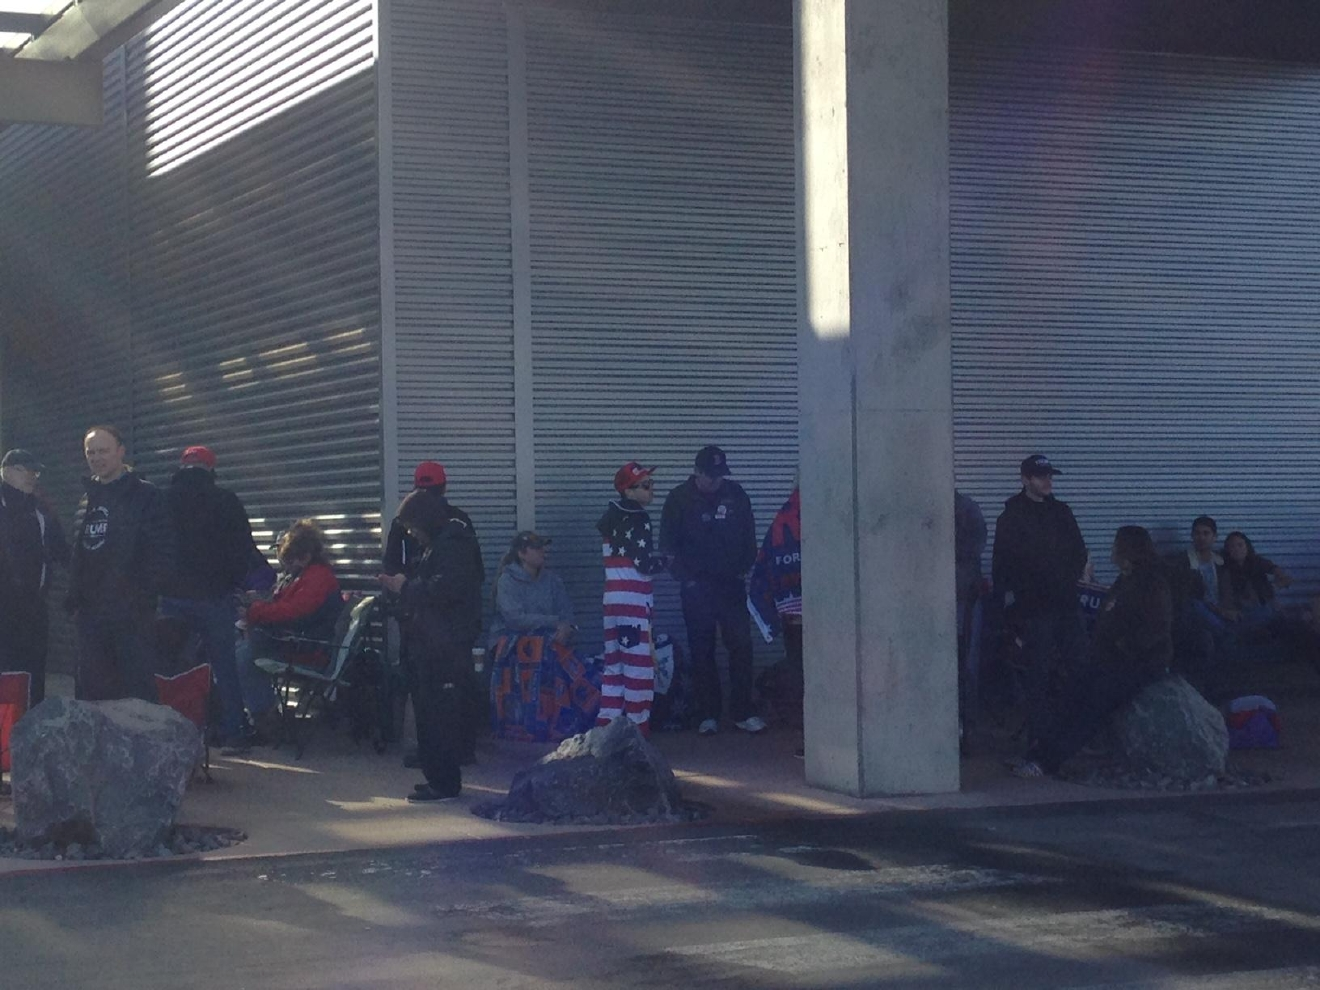 Northern Nevadans line up to see presidential candidate Donald Trump at his Reno campaign rally, just days prior to the general election, on Nov. 5, 2016. (SBG)